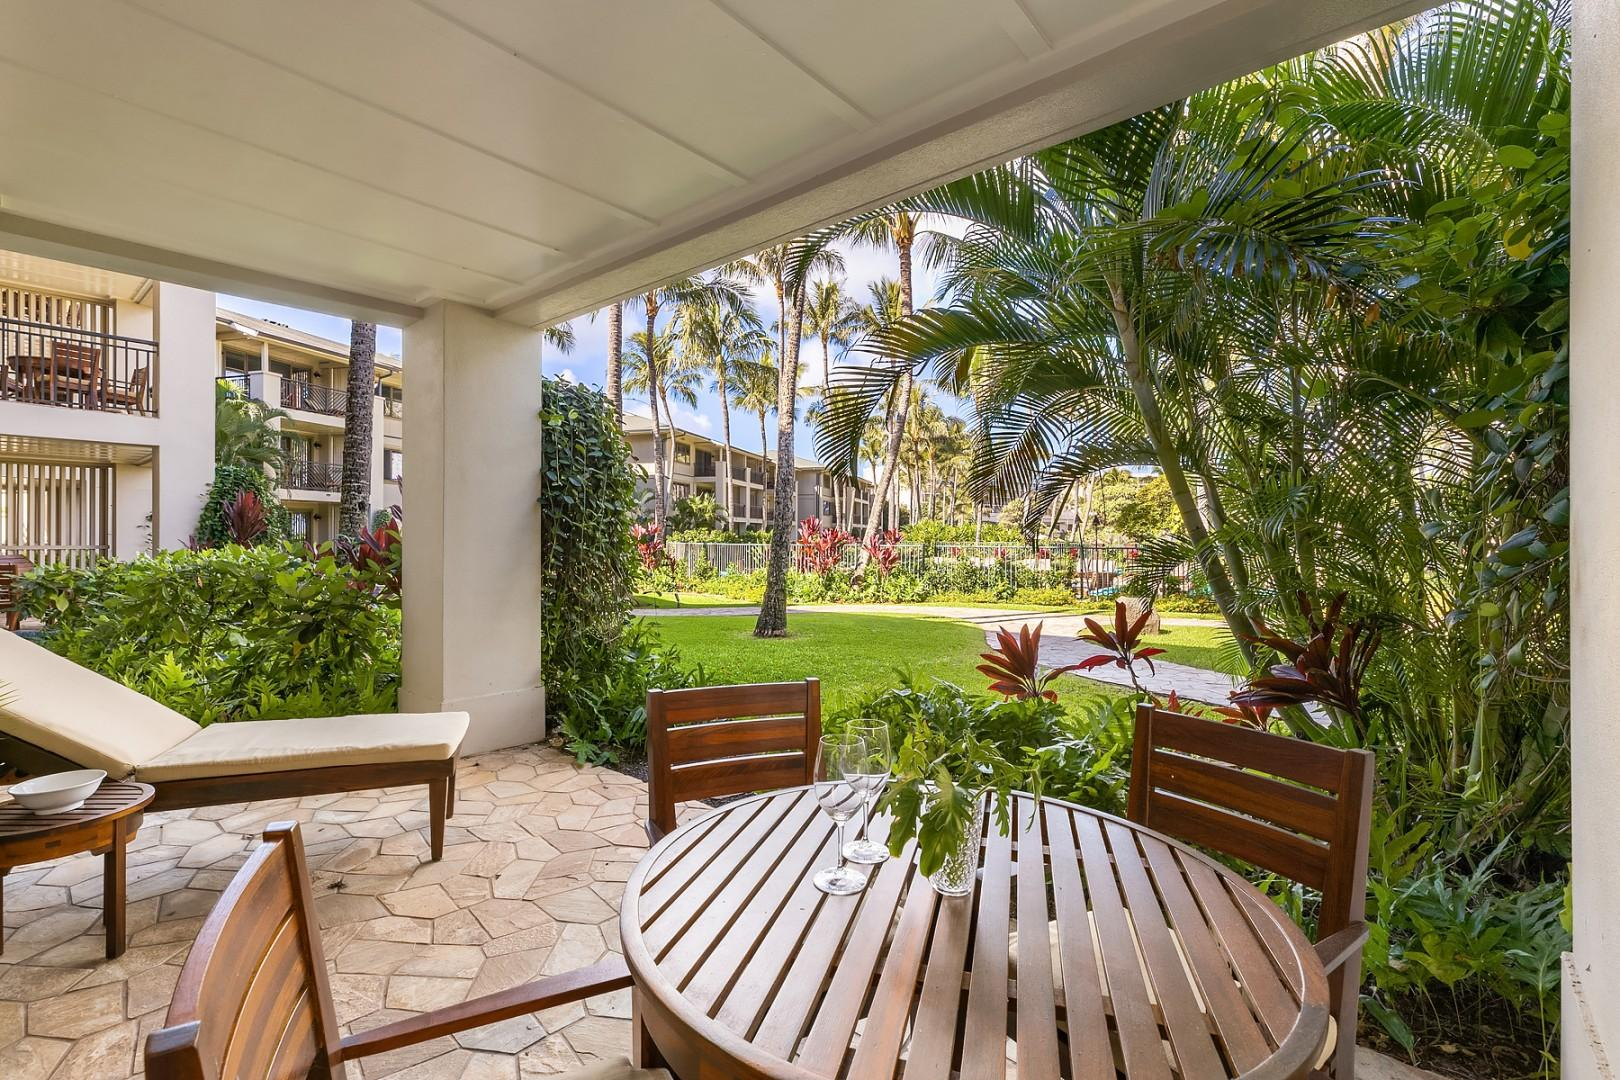 Ground floor lanai with beautifully landscaped garden views, and easy access to the pool and beach lagoon in front.